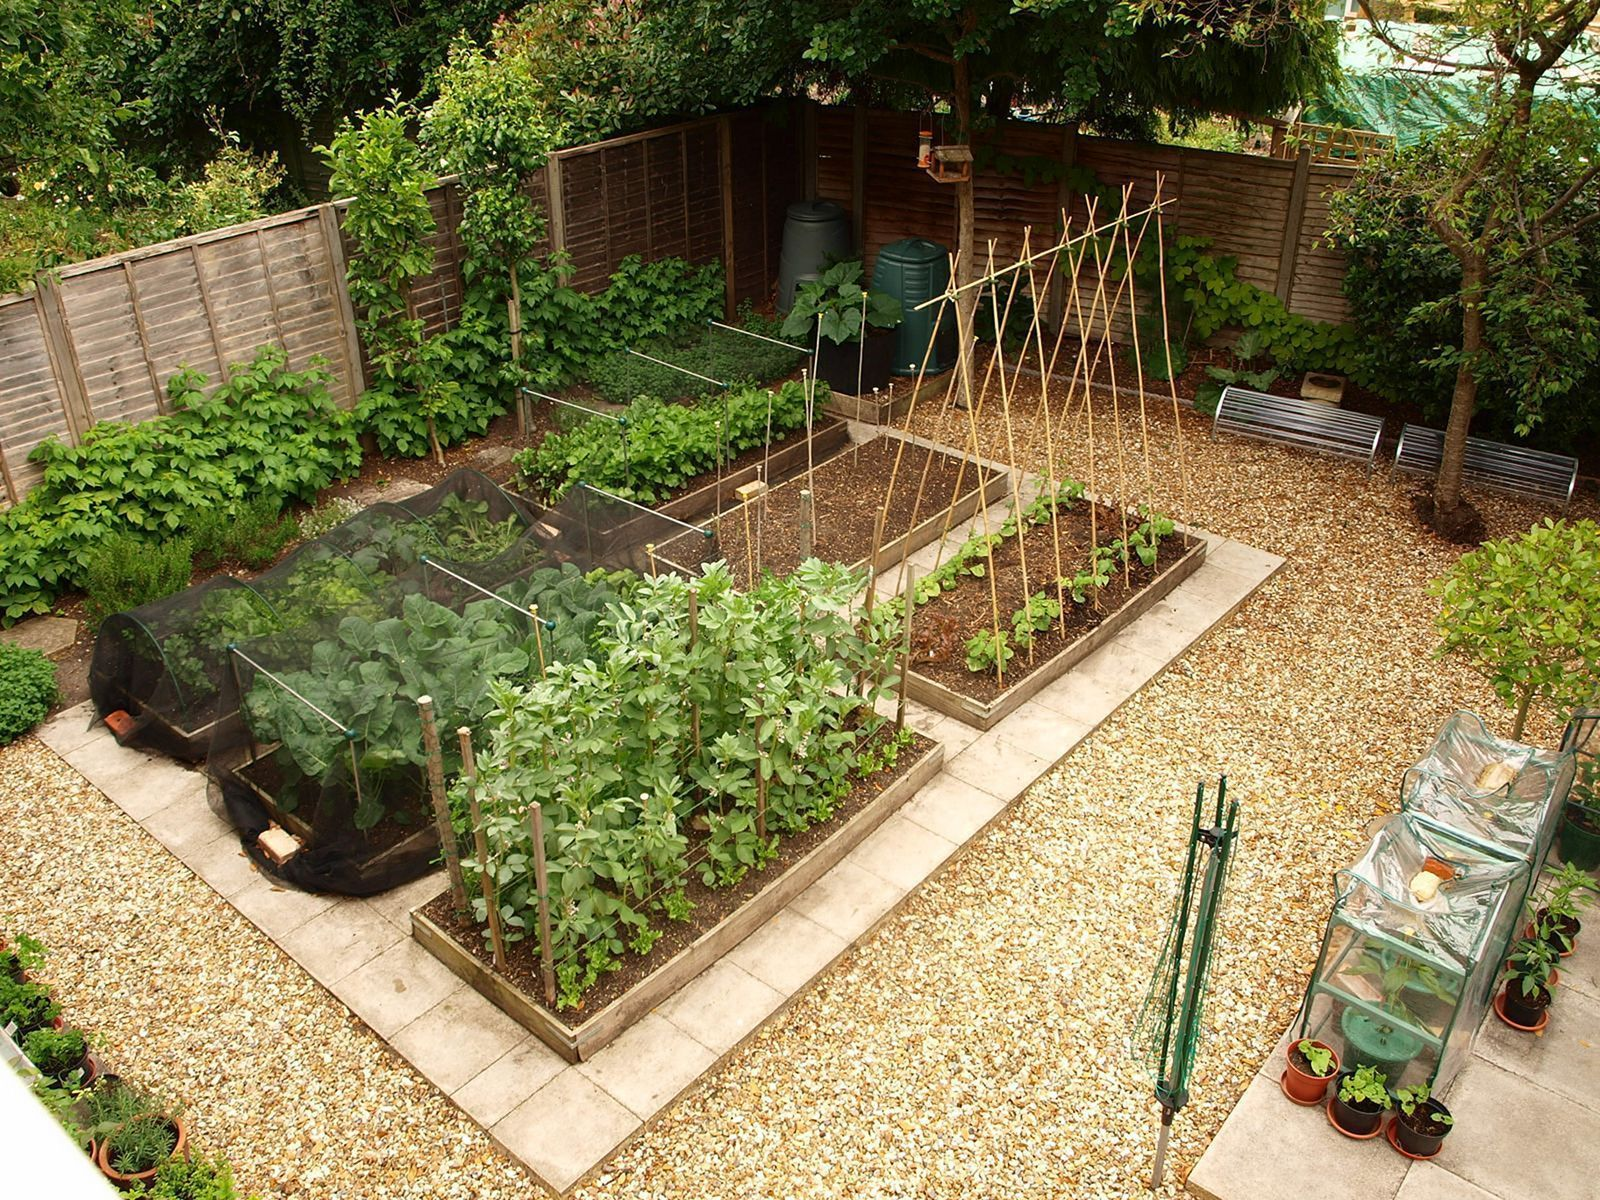 10 Vegetable Garden Setup Ideas Most Of The Awesome And Lovely Garden Layout Vegetable Small Vegetable Gardens Garden Layout